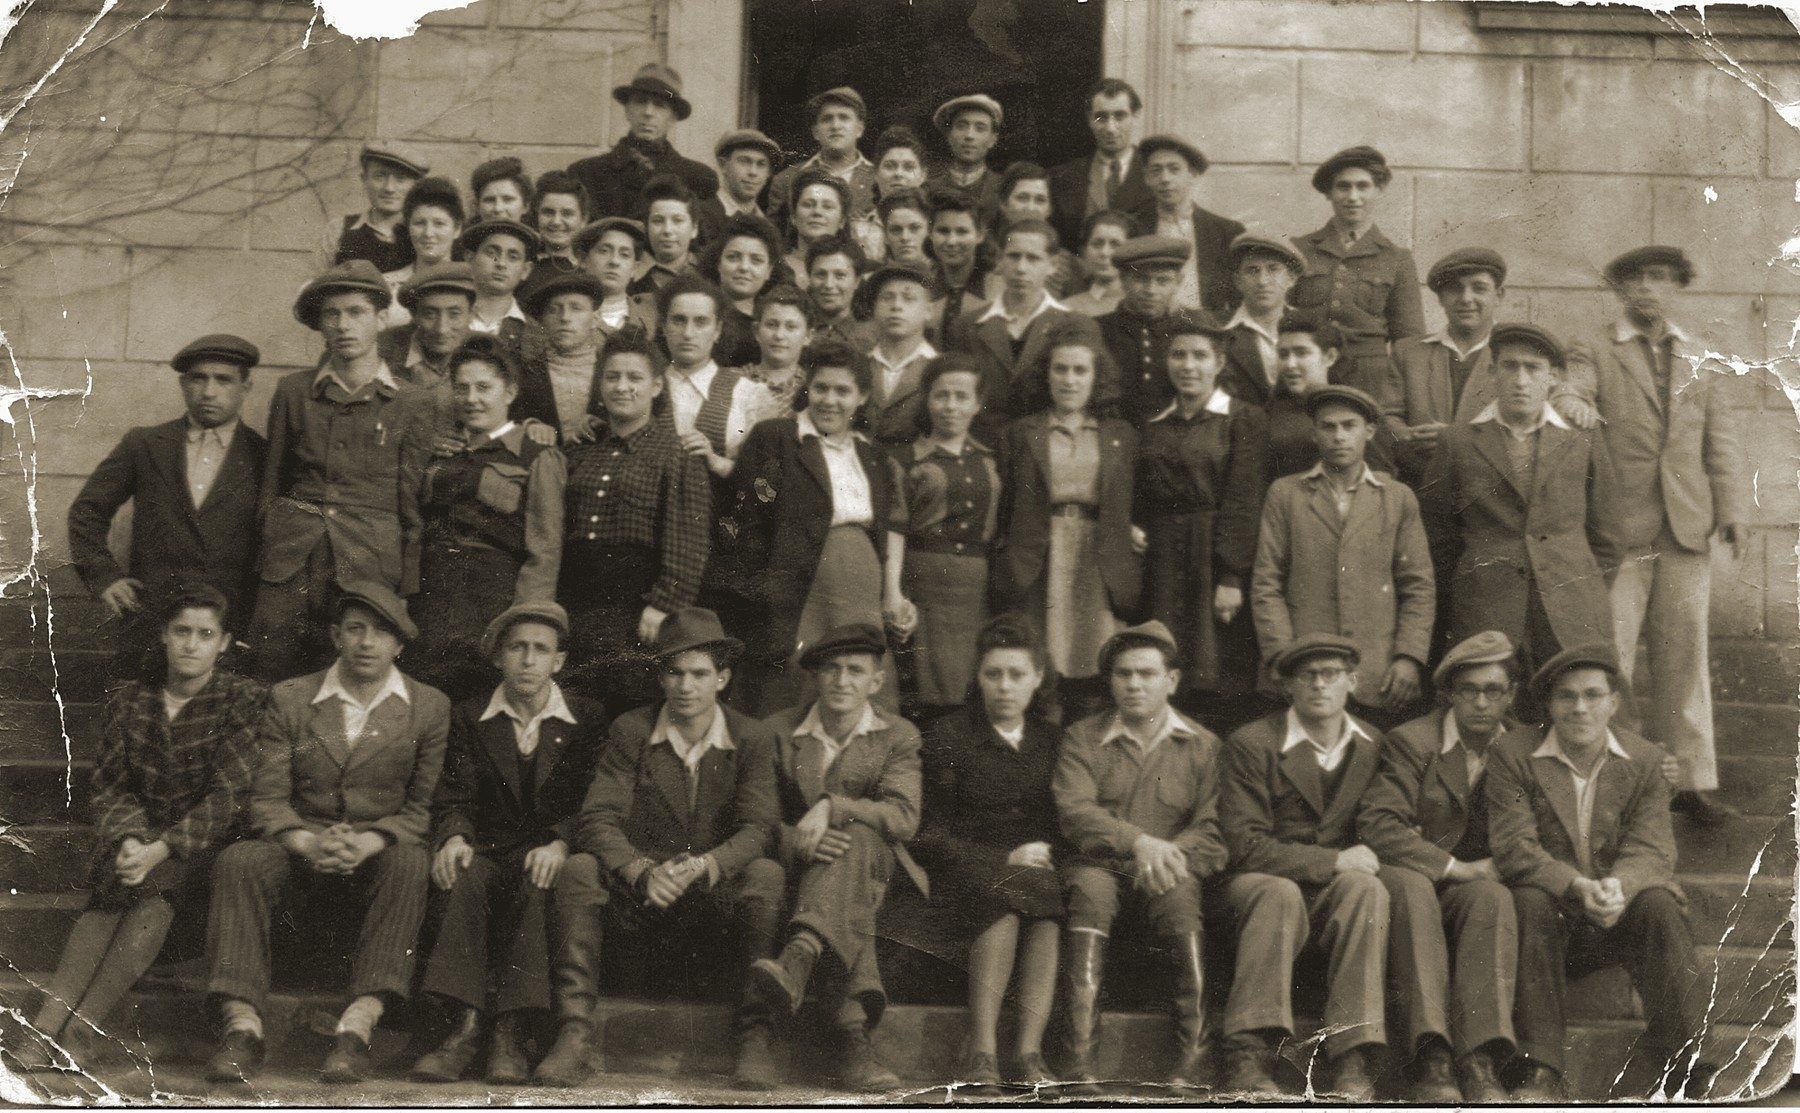 Members of Kibbutz Magshimim in Bedzin Poland.  Izhak Lauer is seated first row, fifth from the left.  Esther Urman is standing fourth row, third from the left.